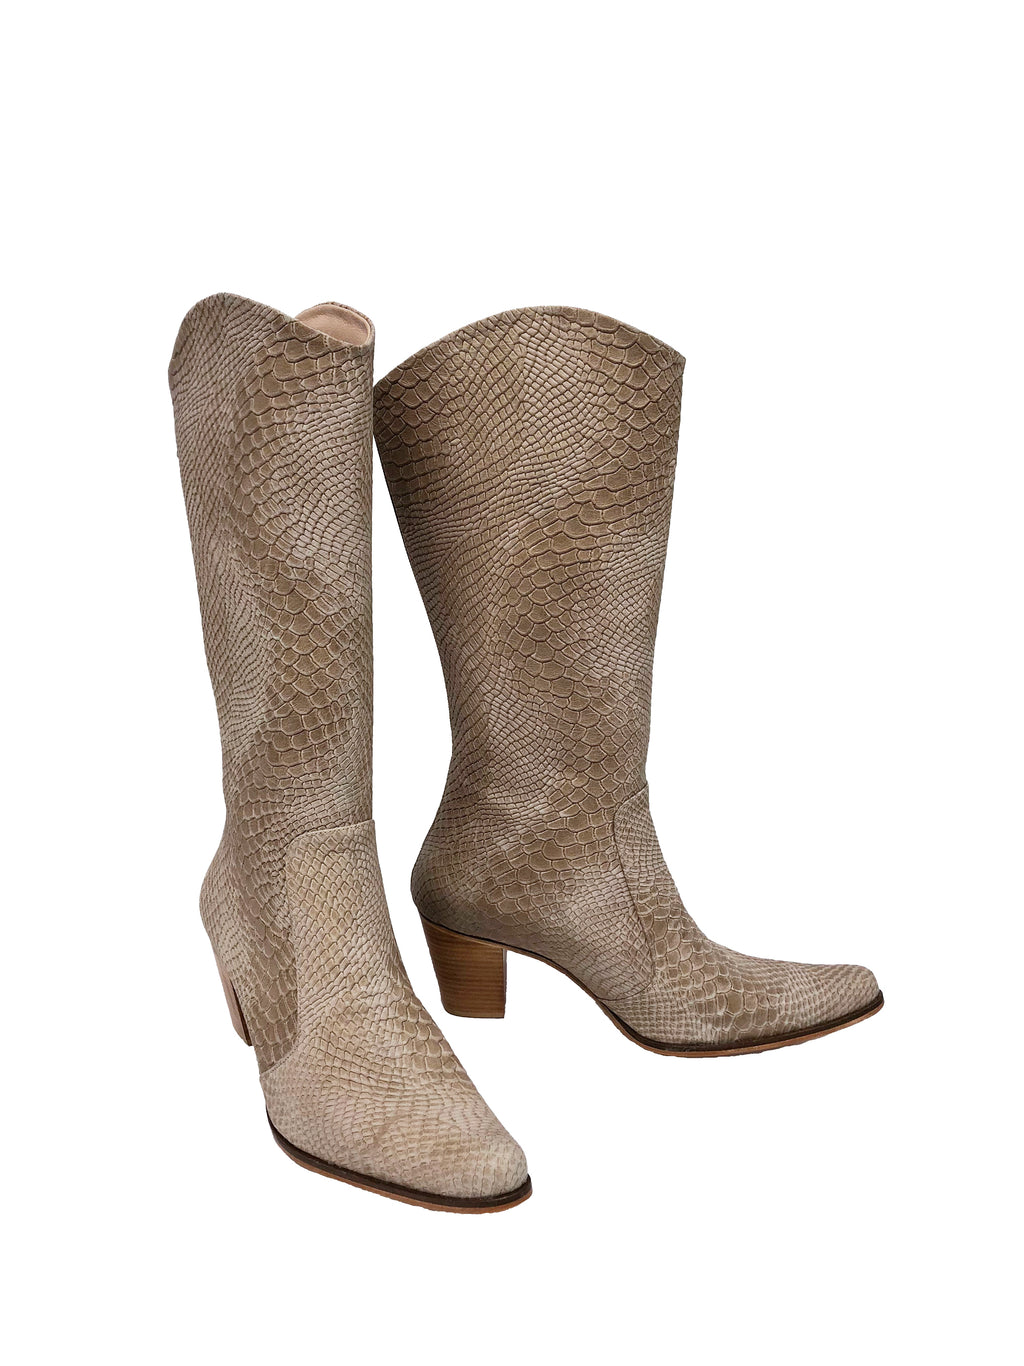 Nude Python Leather - Cowboys